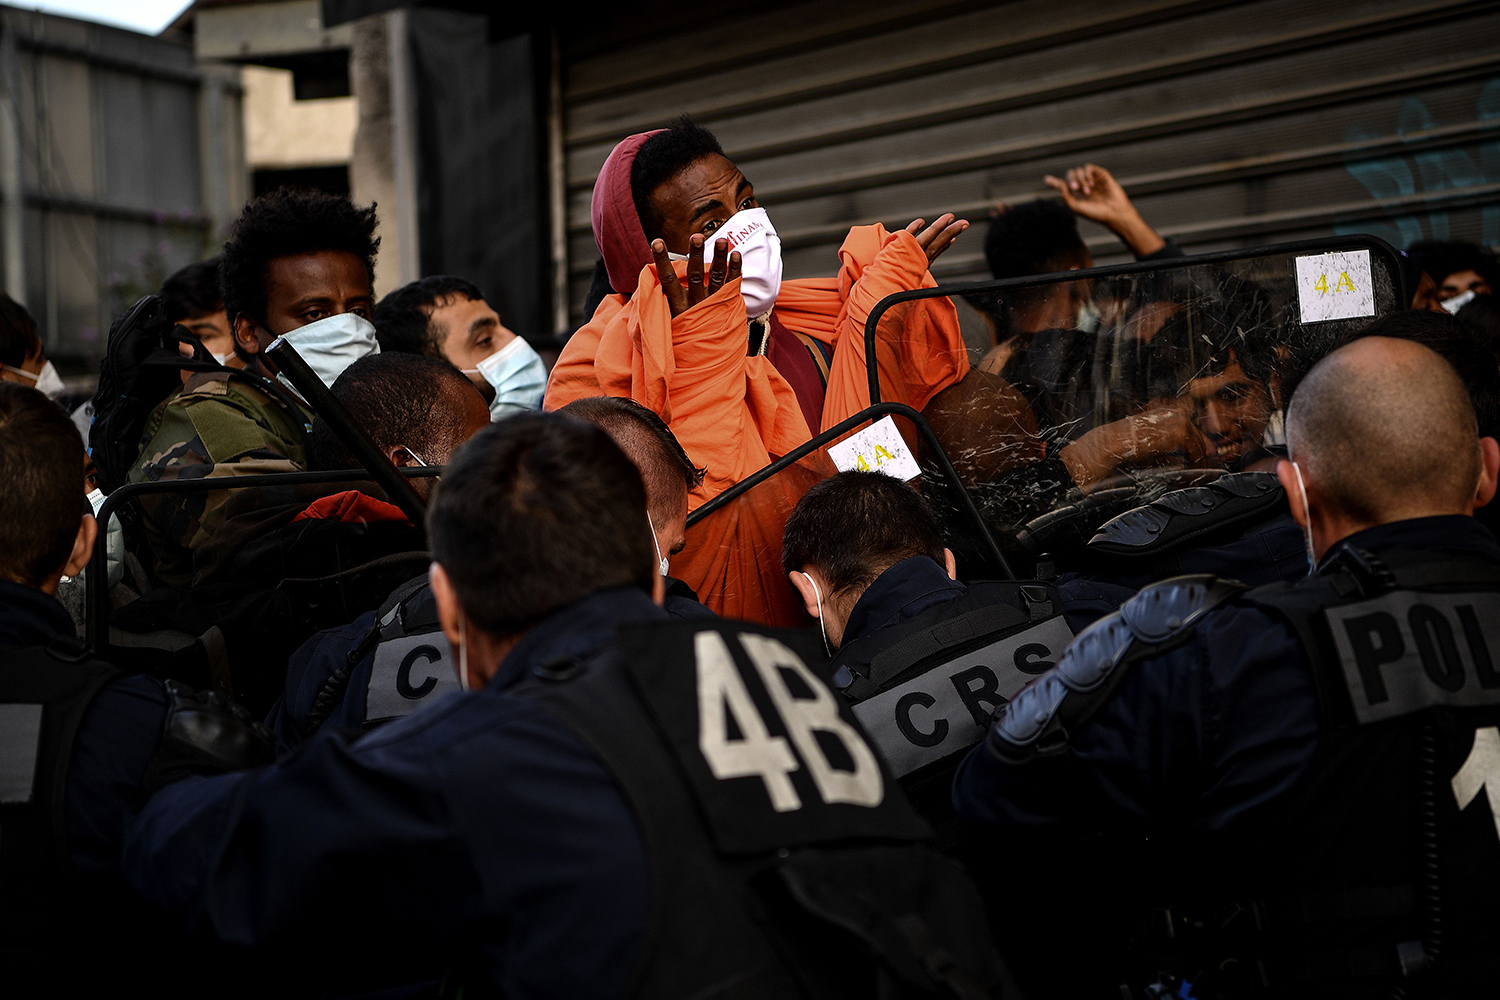 Asylum seekers face riot police officers during their evacuation from a makeshift camp in Aubervilliers, France, on July 29. CHRISTOPHE ARCHAMBAULT/AFP via Getty Images